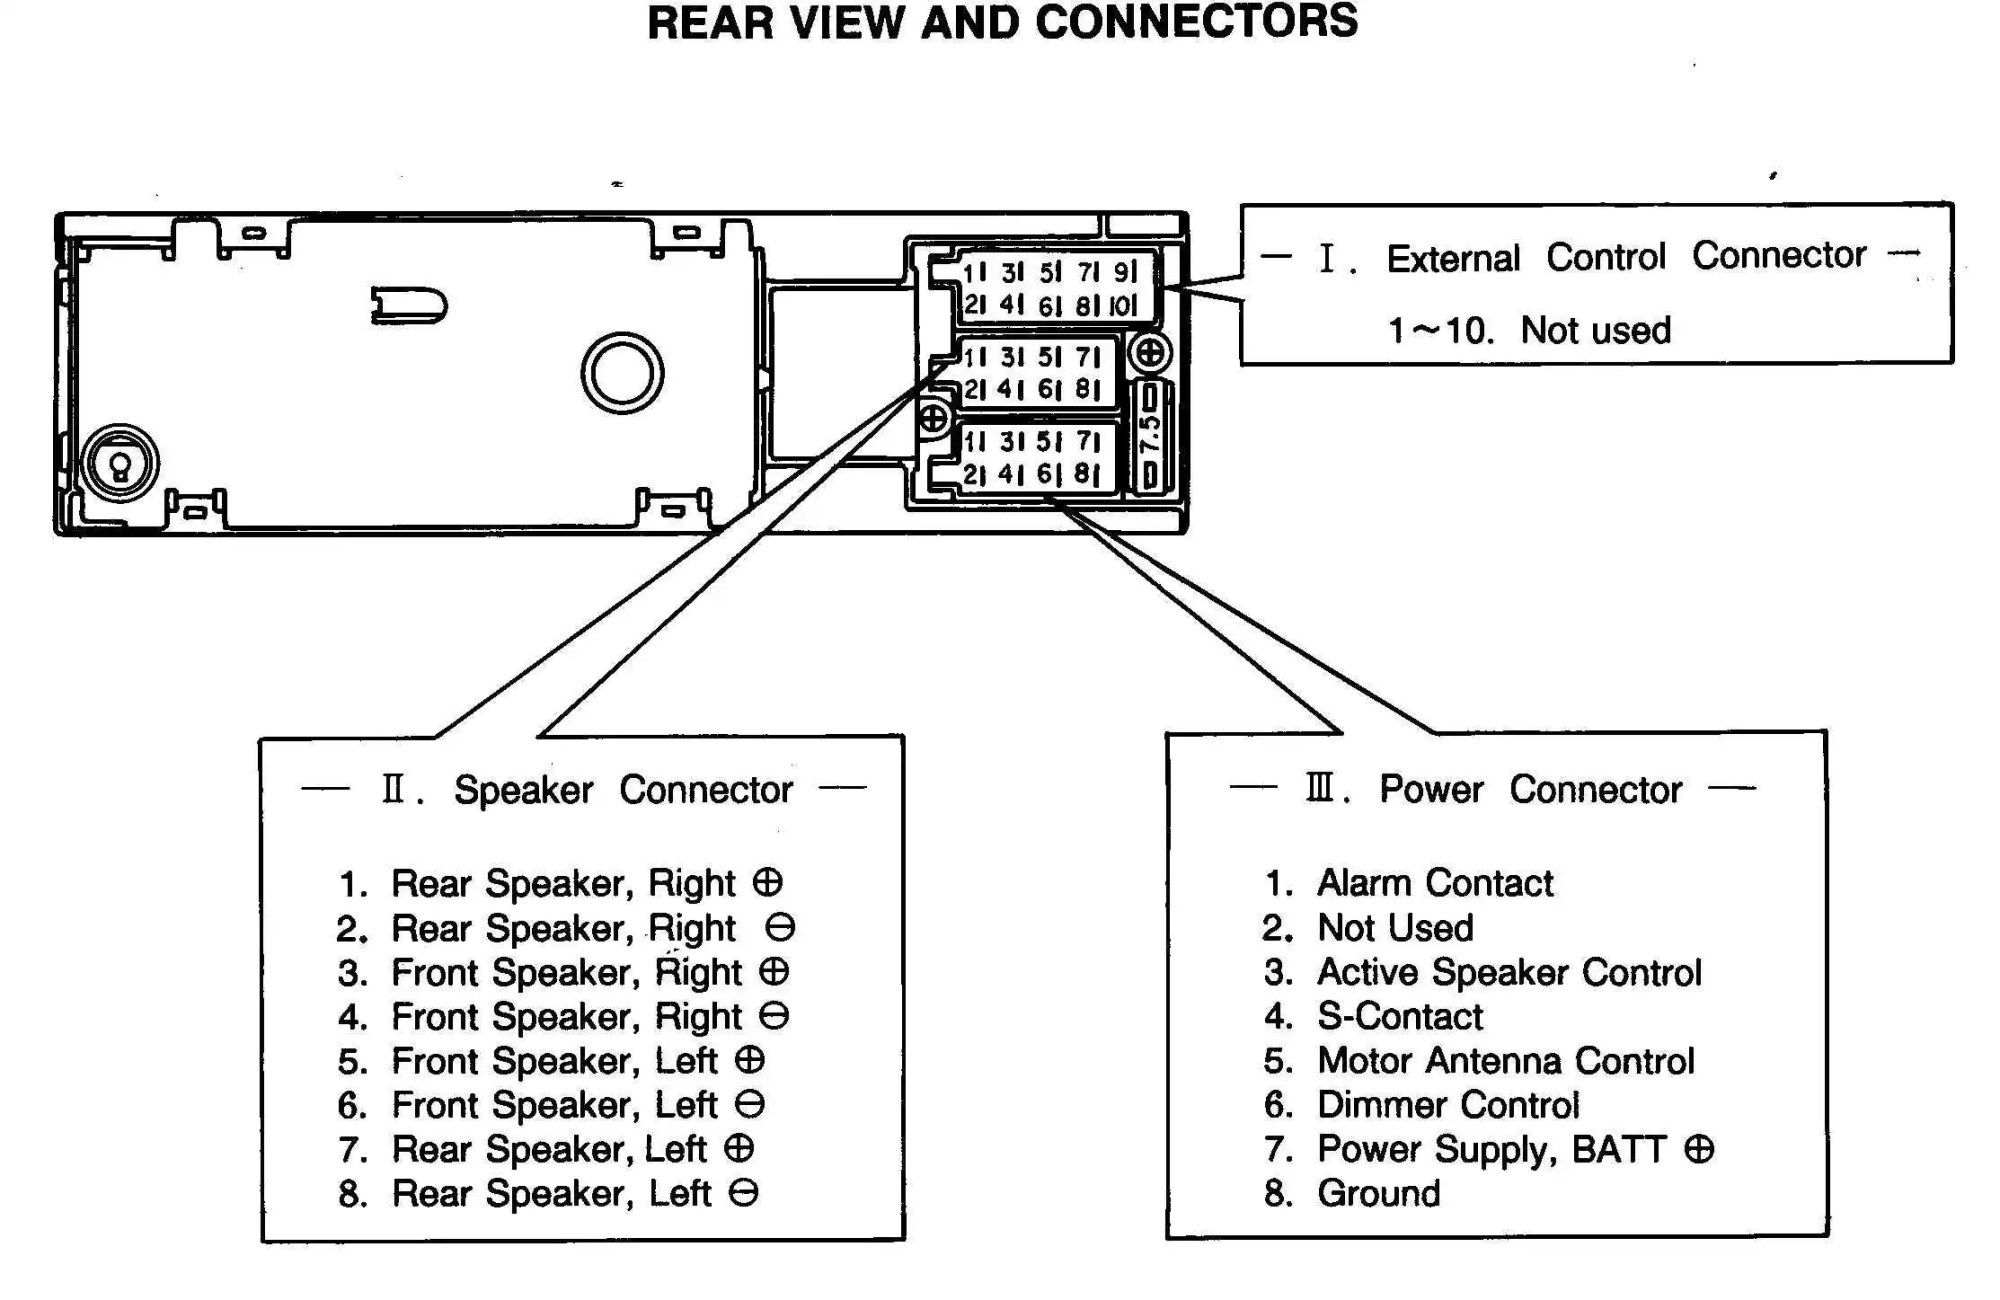 hight resolution of car stereo connector wiring diagram schema wiring diagrams rca wsp150 stereo wiring diagram car audio wire